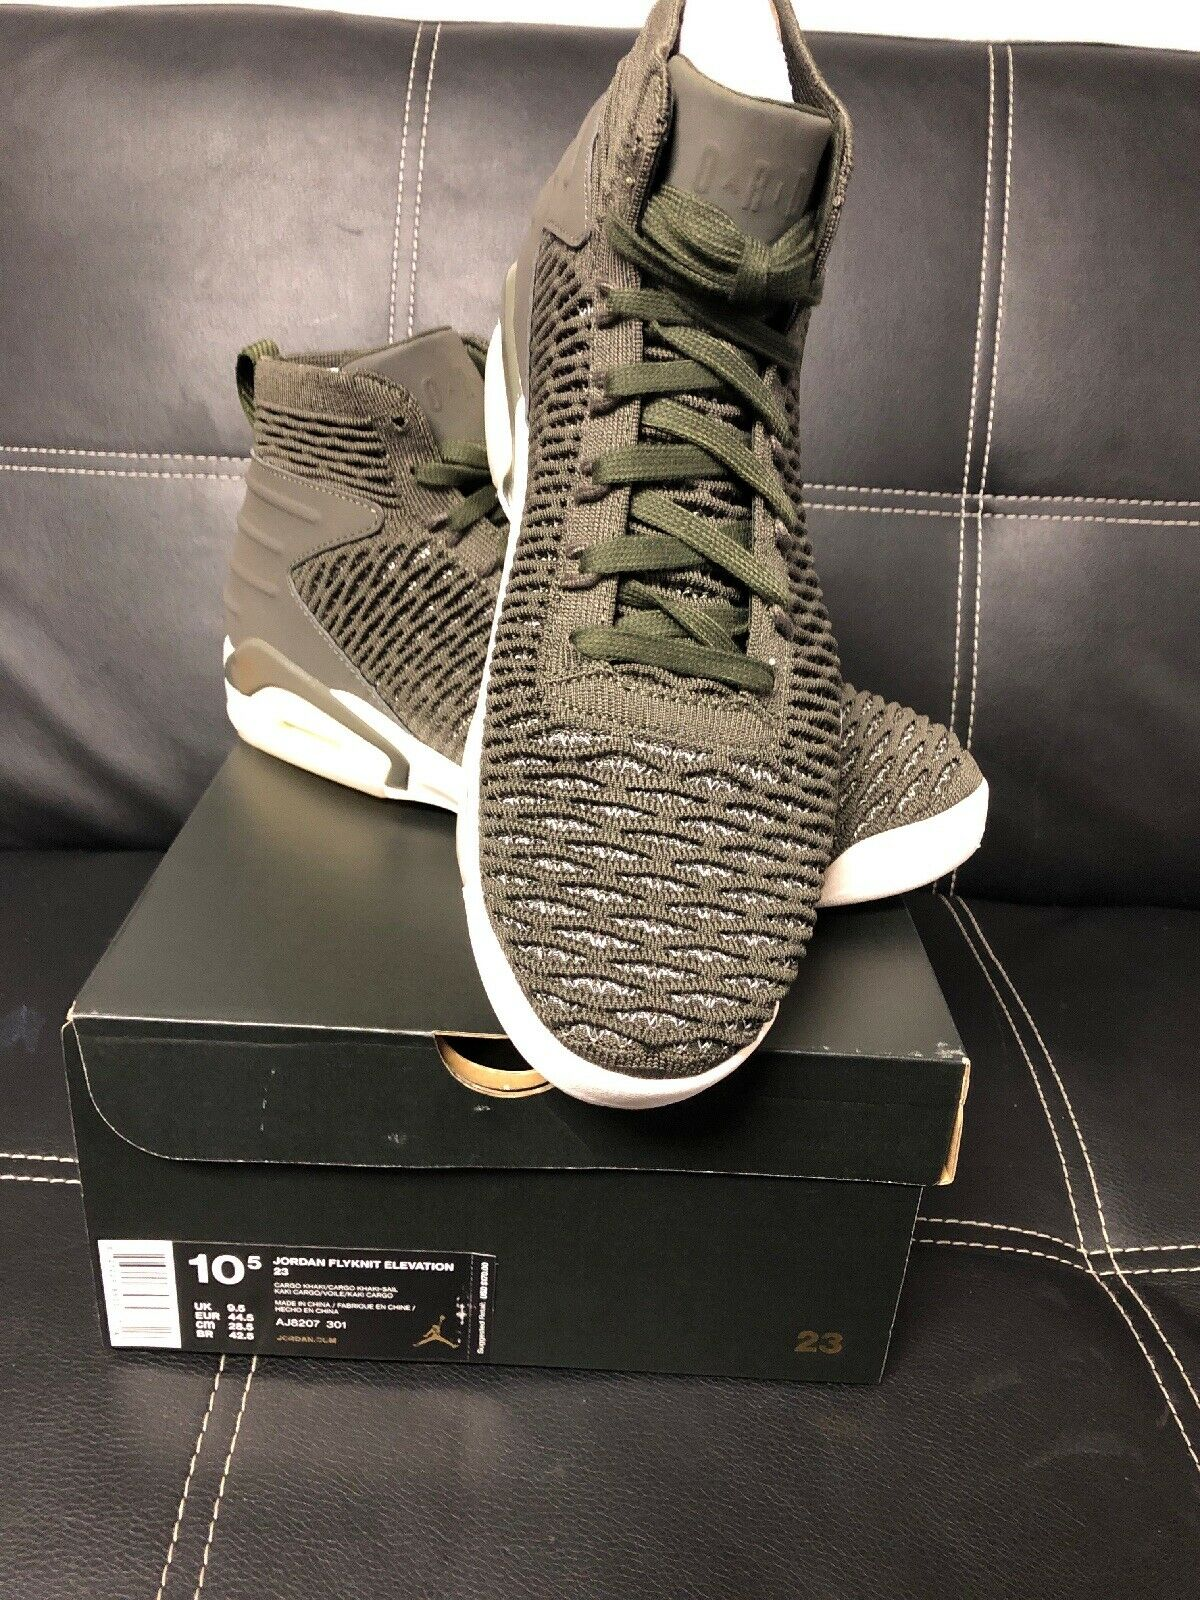 64007e51d4452e Jordan Flyknit Elevation 23 Mens Aj8207-301 Cargo Khaki Basketball Shoes Sz  10.5 for sale online